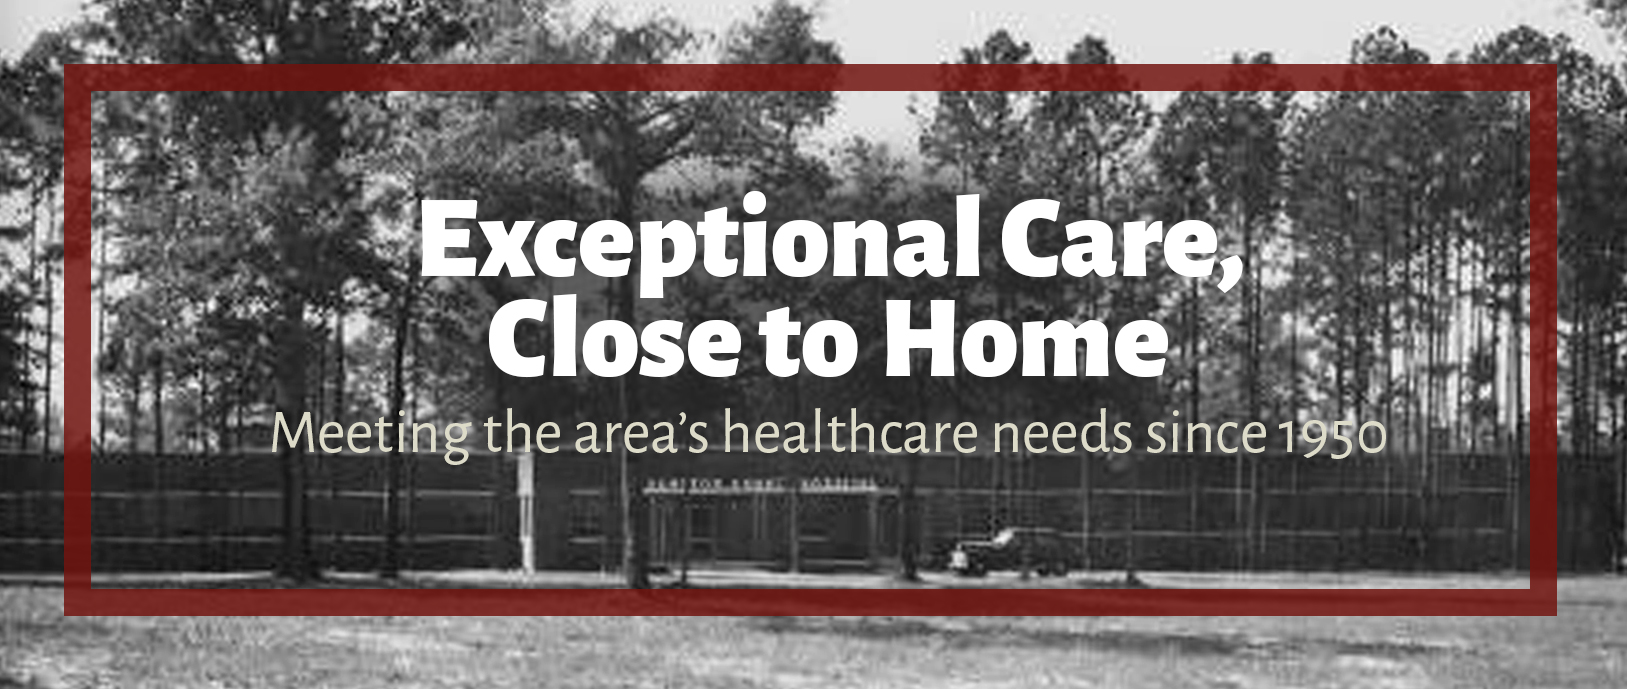 """Text reads, """"Exceptional Care, Close to Home. Meeting the area's healthcare need since 1950."""" There is a background image of the old Hampton RMC building"""